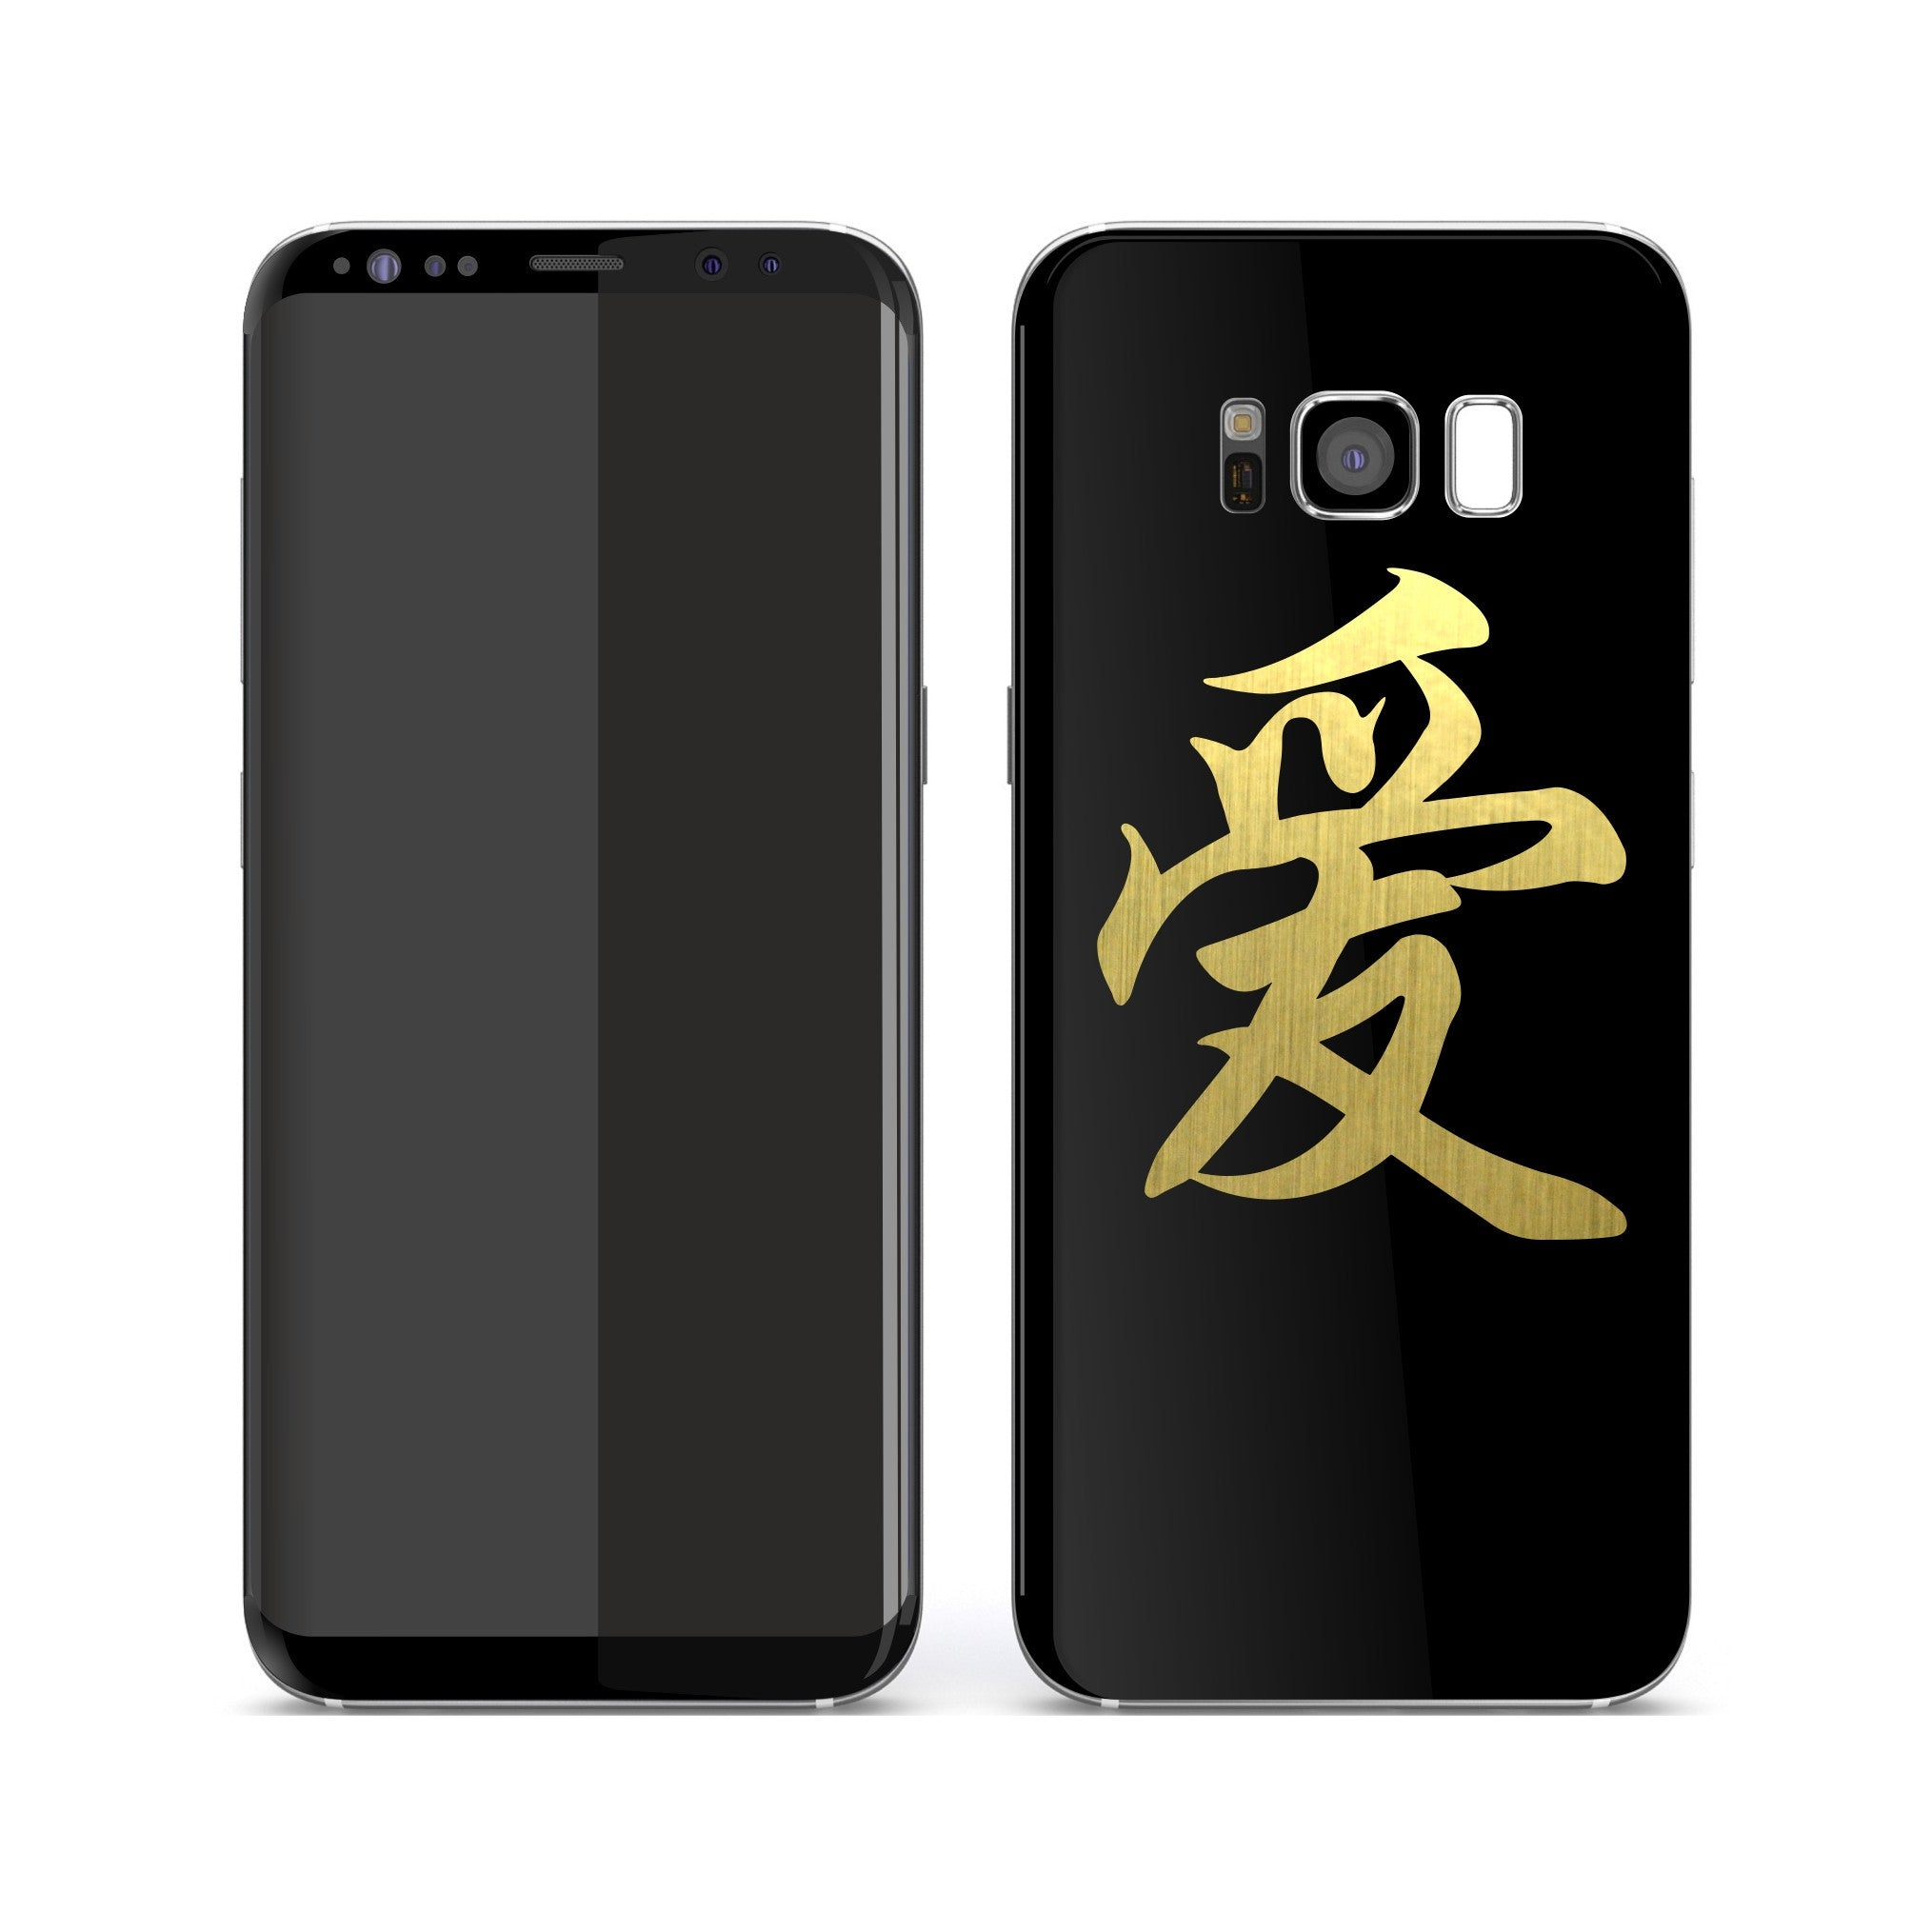 Samsung Galaxy S8 Chinese LOVE Symbol Custom Design Matt White Skin Wrap Decal Protector Cover | EasySkinz